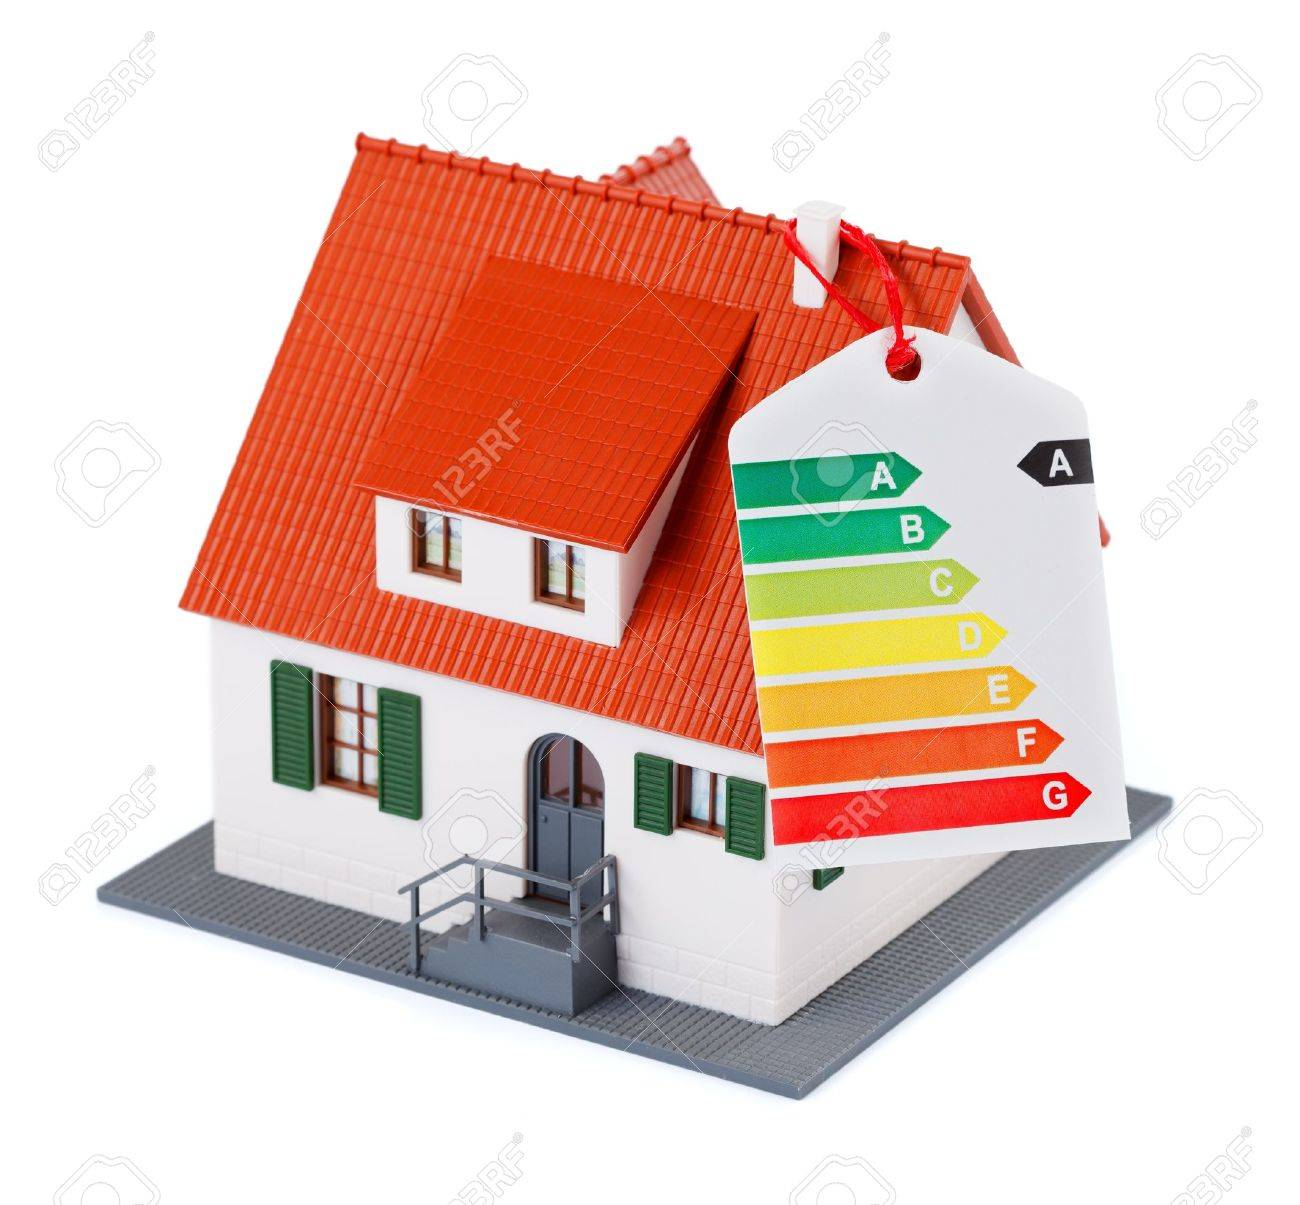 Miniature house with energy efficiency chart Stock Photo - 10845295